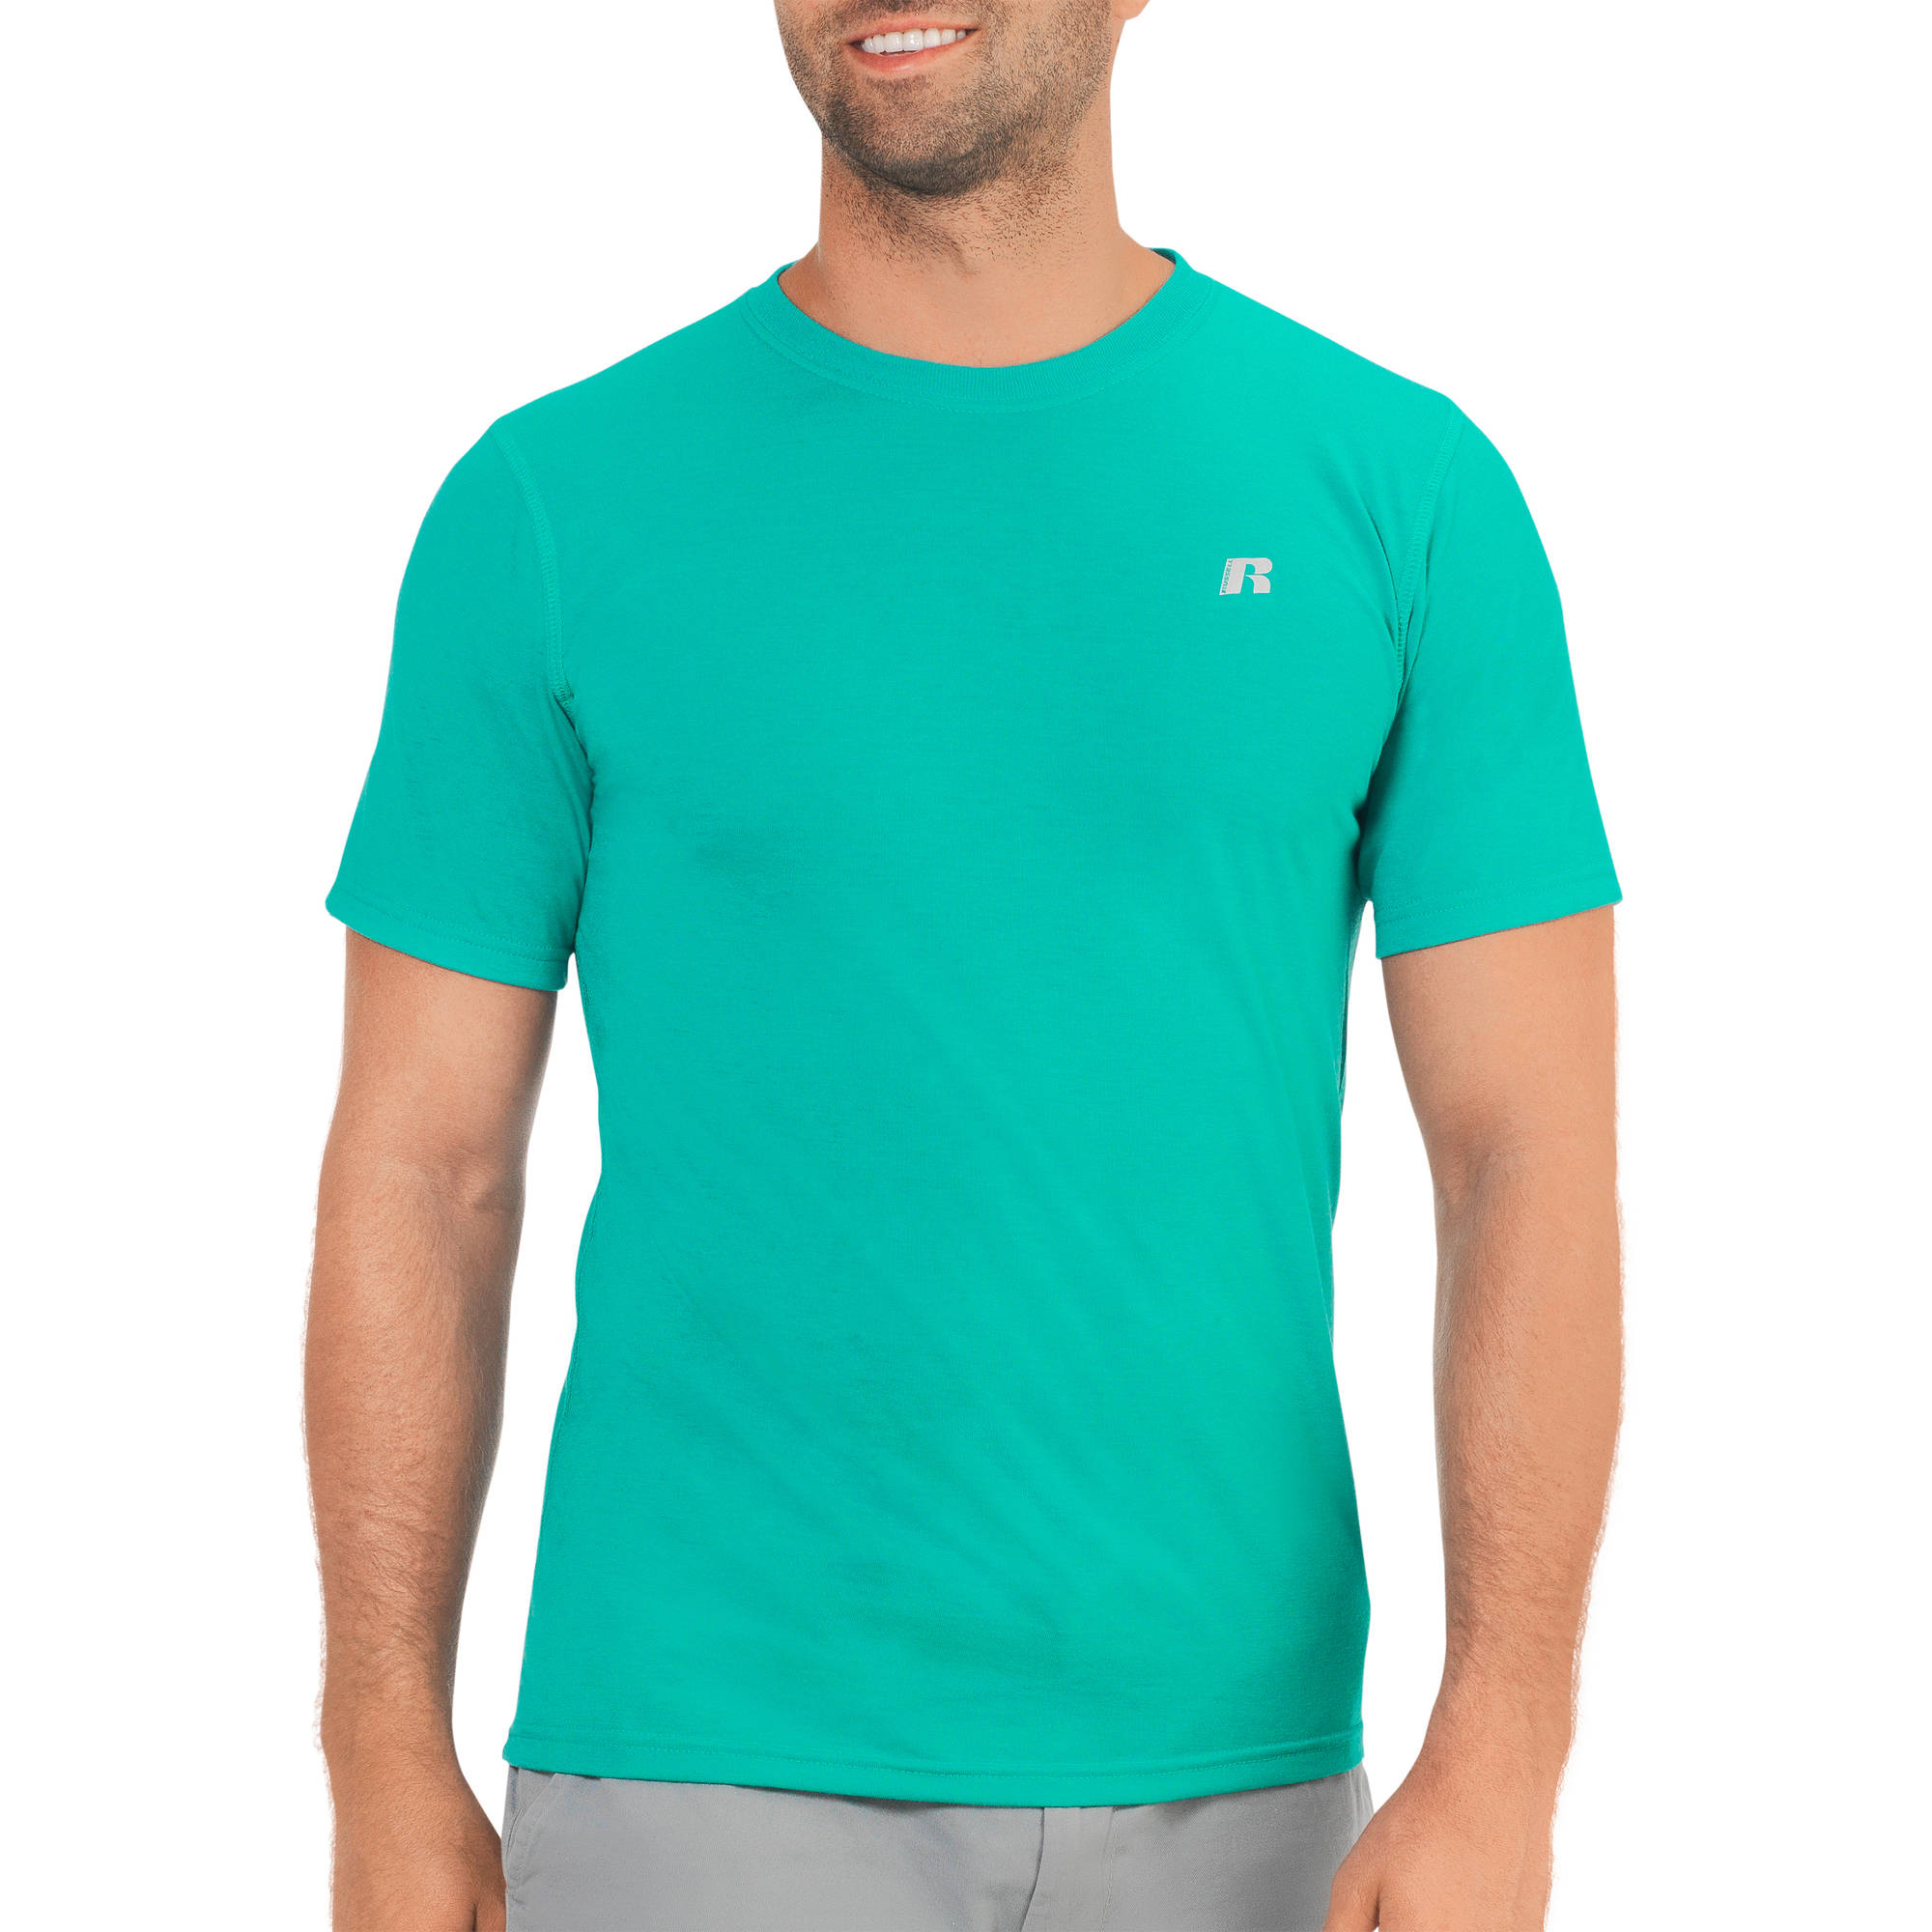 Russell Men's Dri Power T-Shirt (Only Large Left) - $3 + Free In-Store Pickup at Walmart